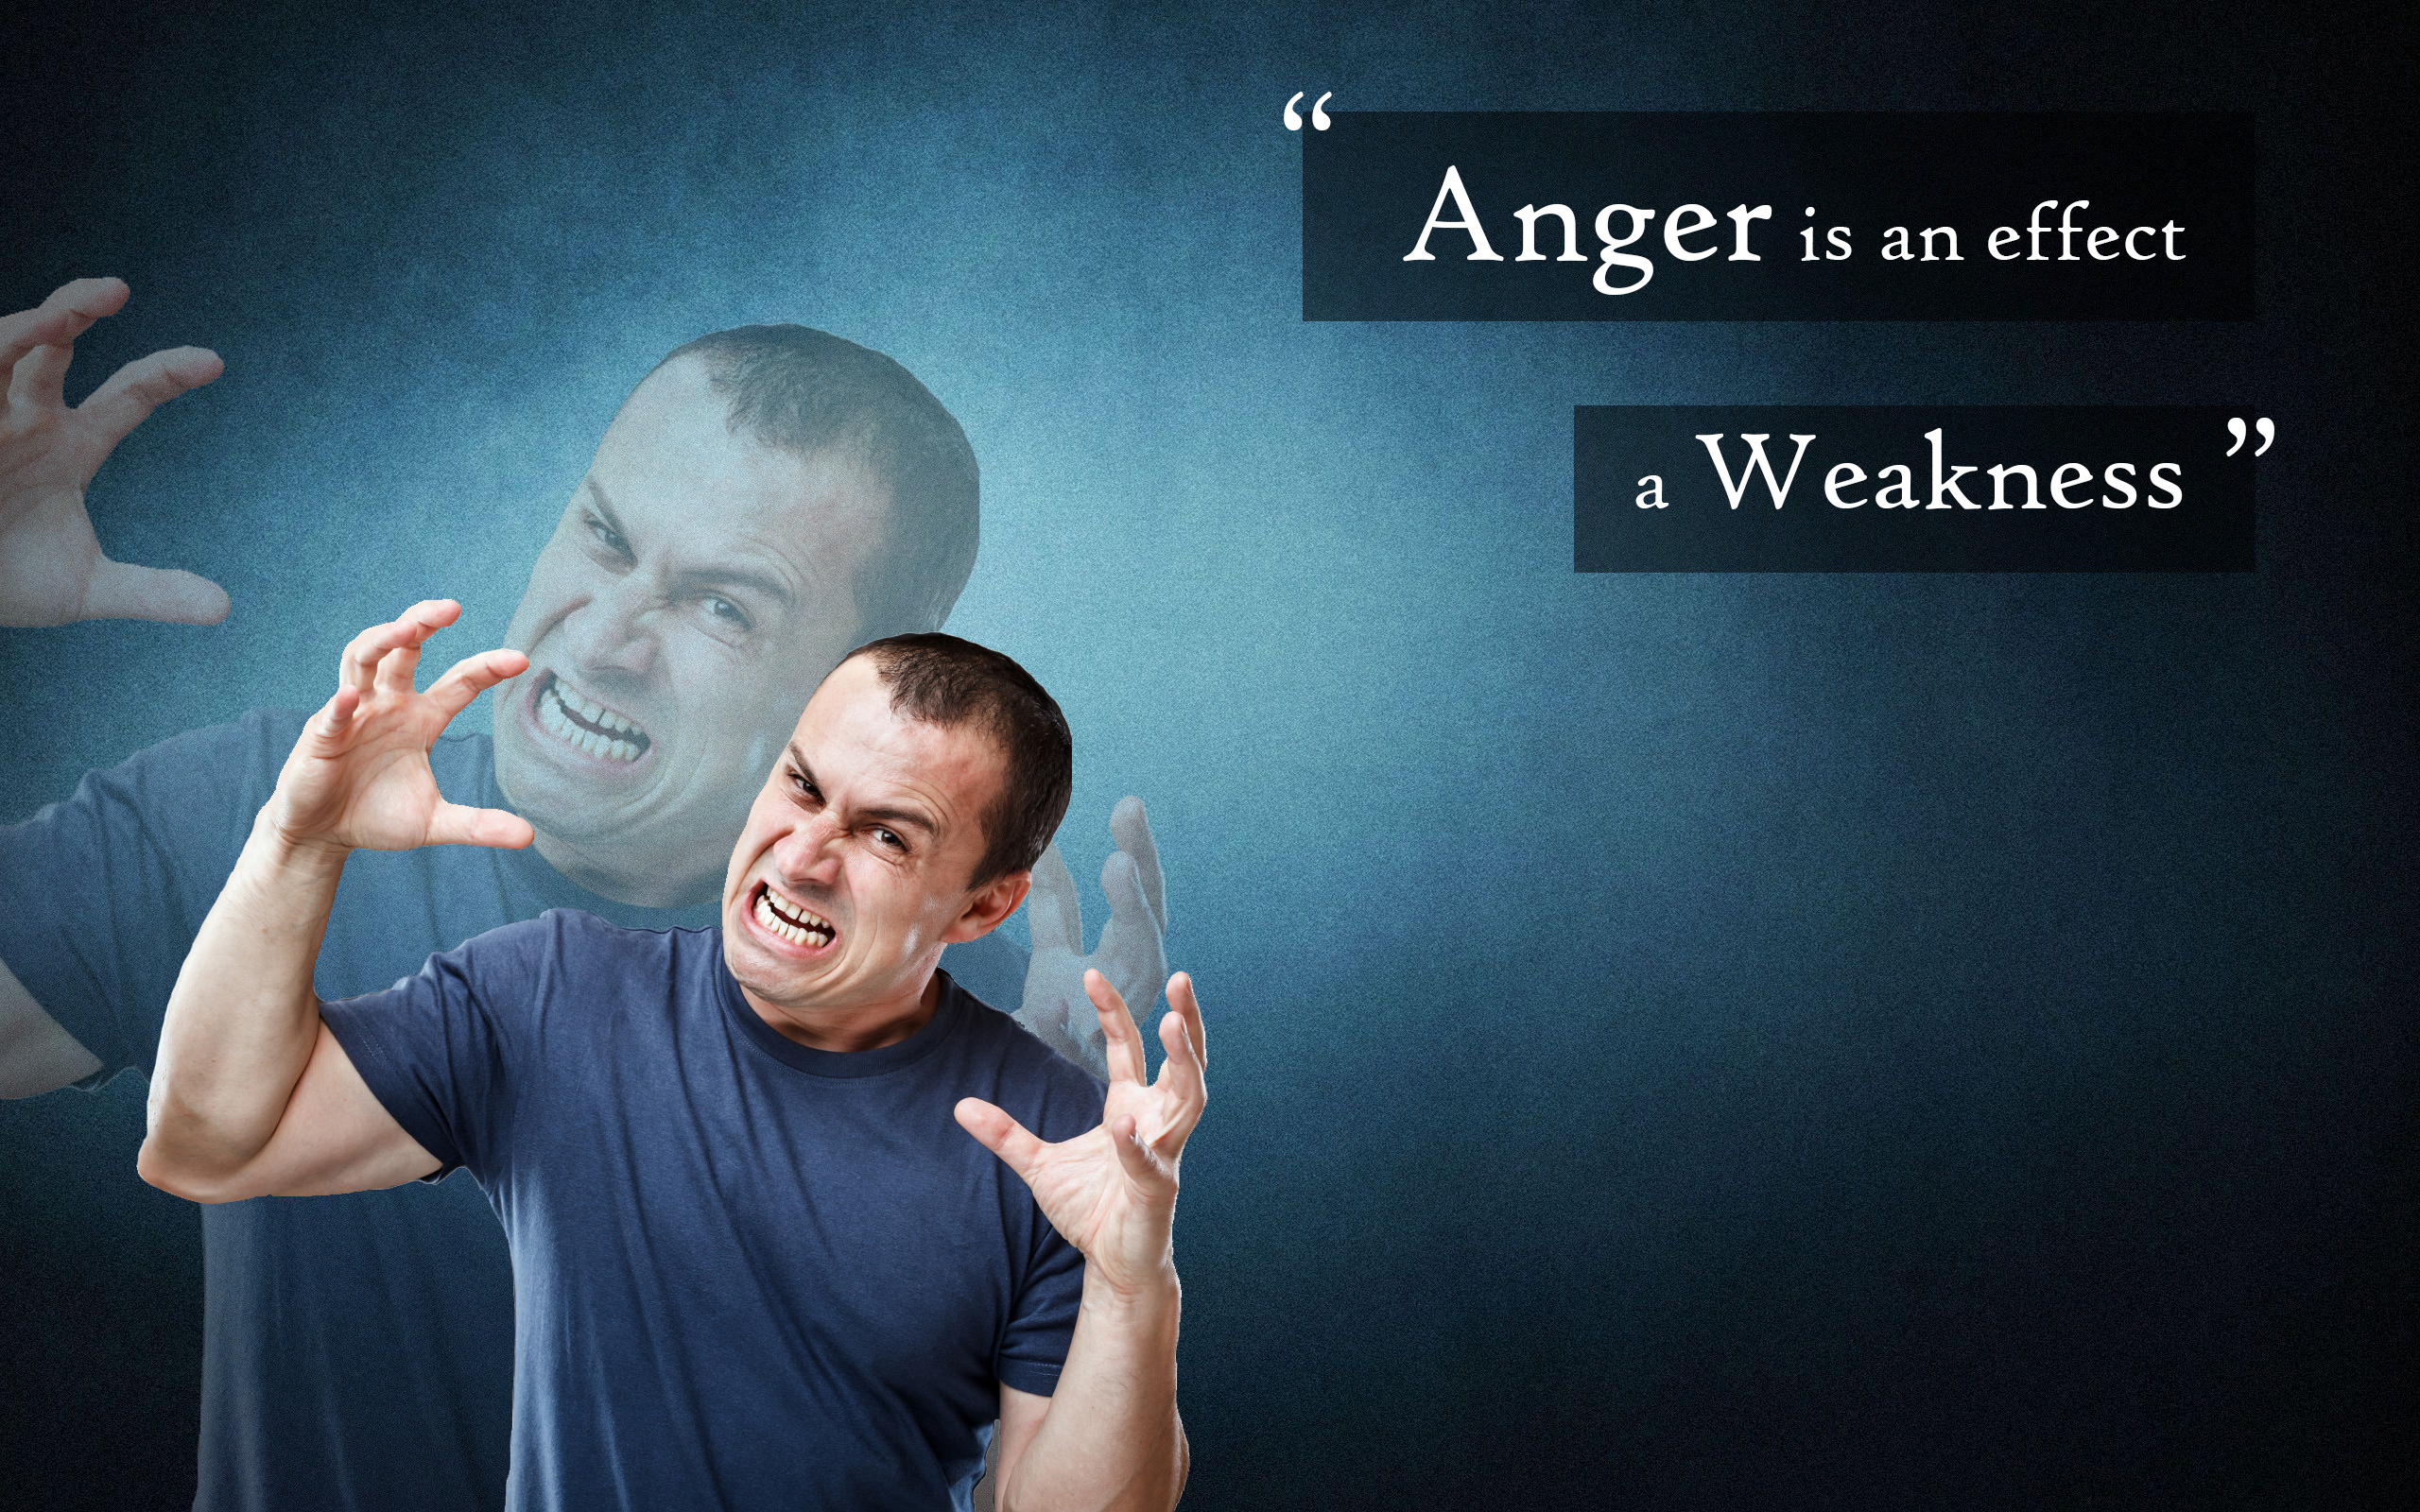 Anger Weak Wall Desktop